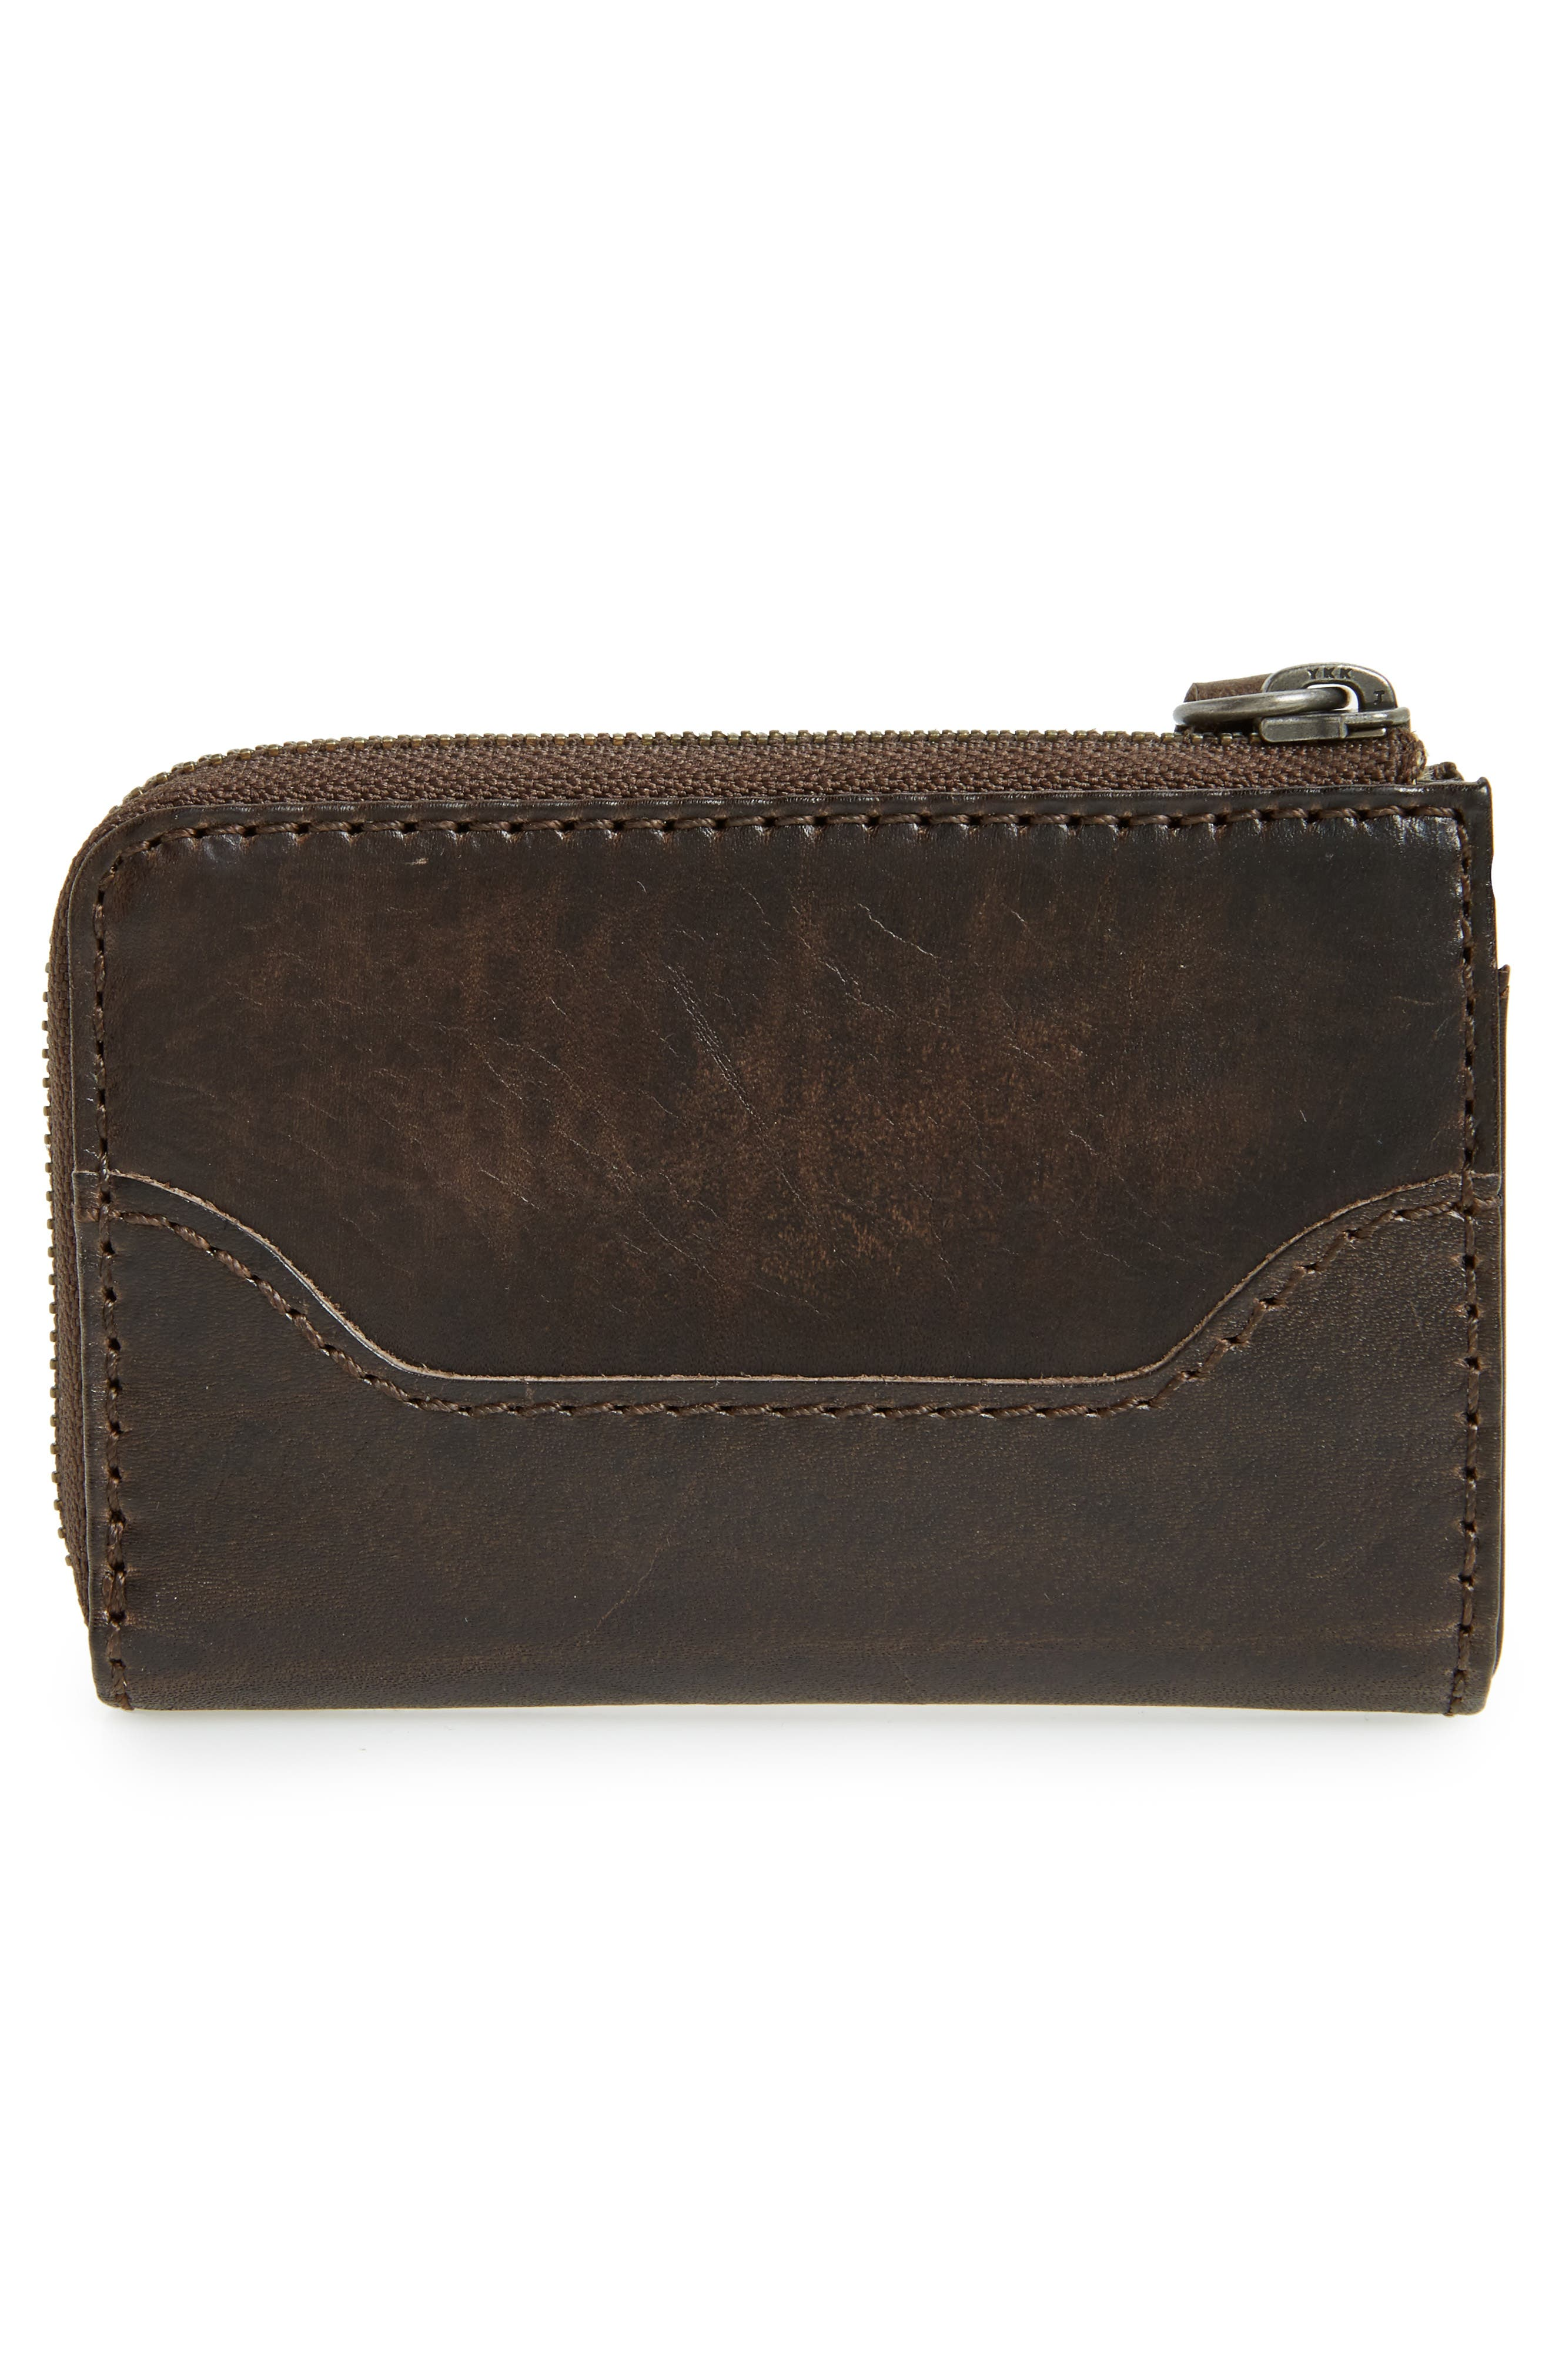 Small Melissa Leather Zip Wallet,                             Alternate thumbnail 4, color,                             203